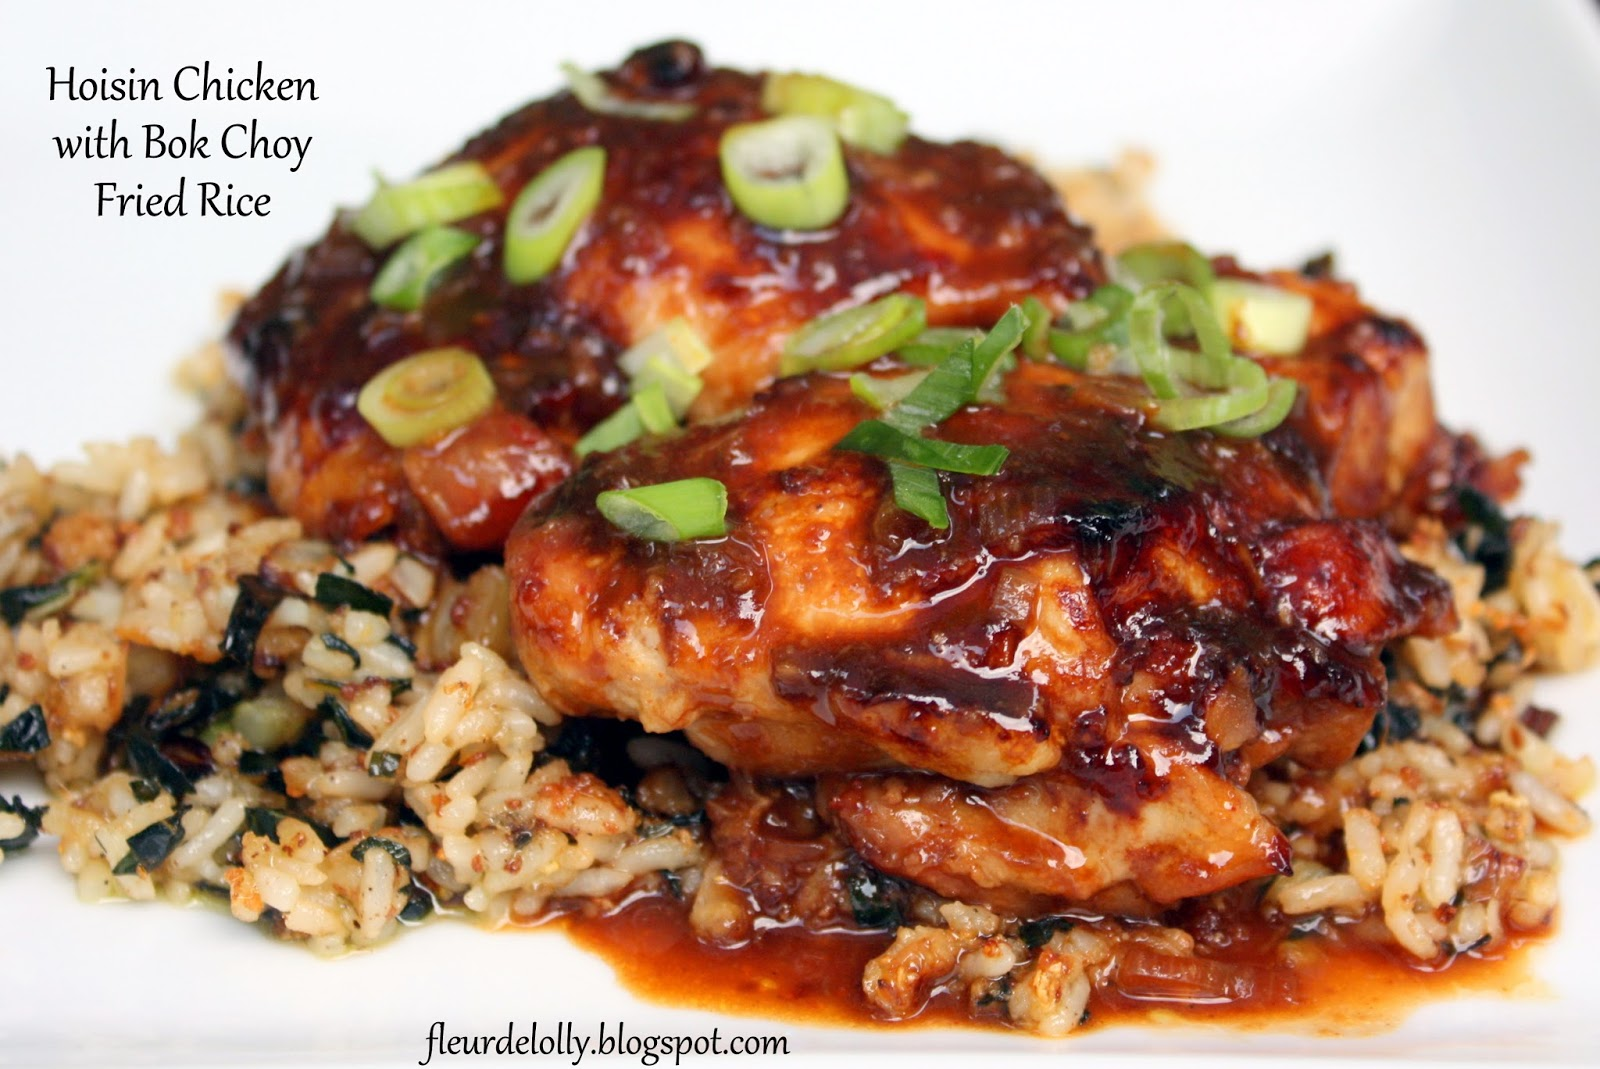 Fleur de Lolly: Hoisin Chicken with Bok Choy Fried Rice